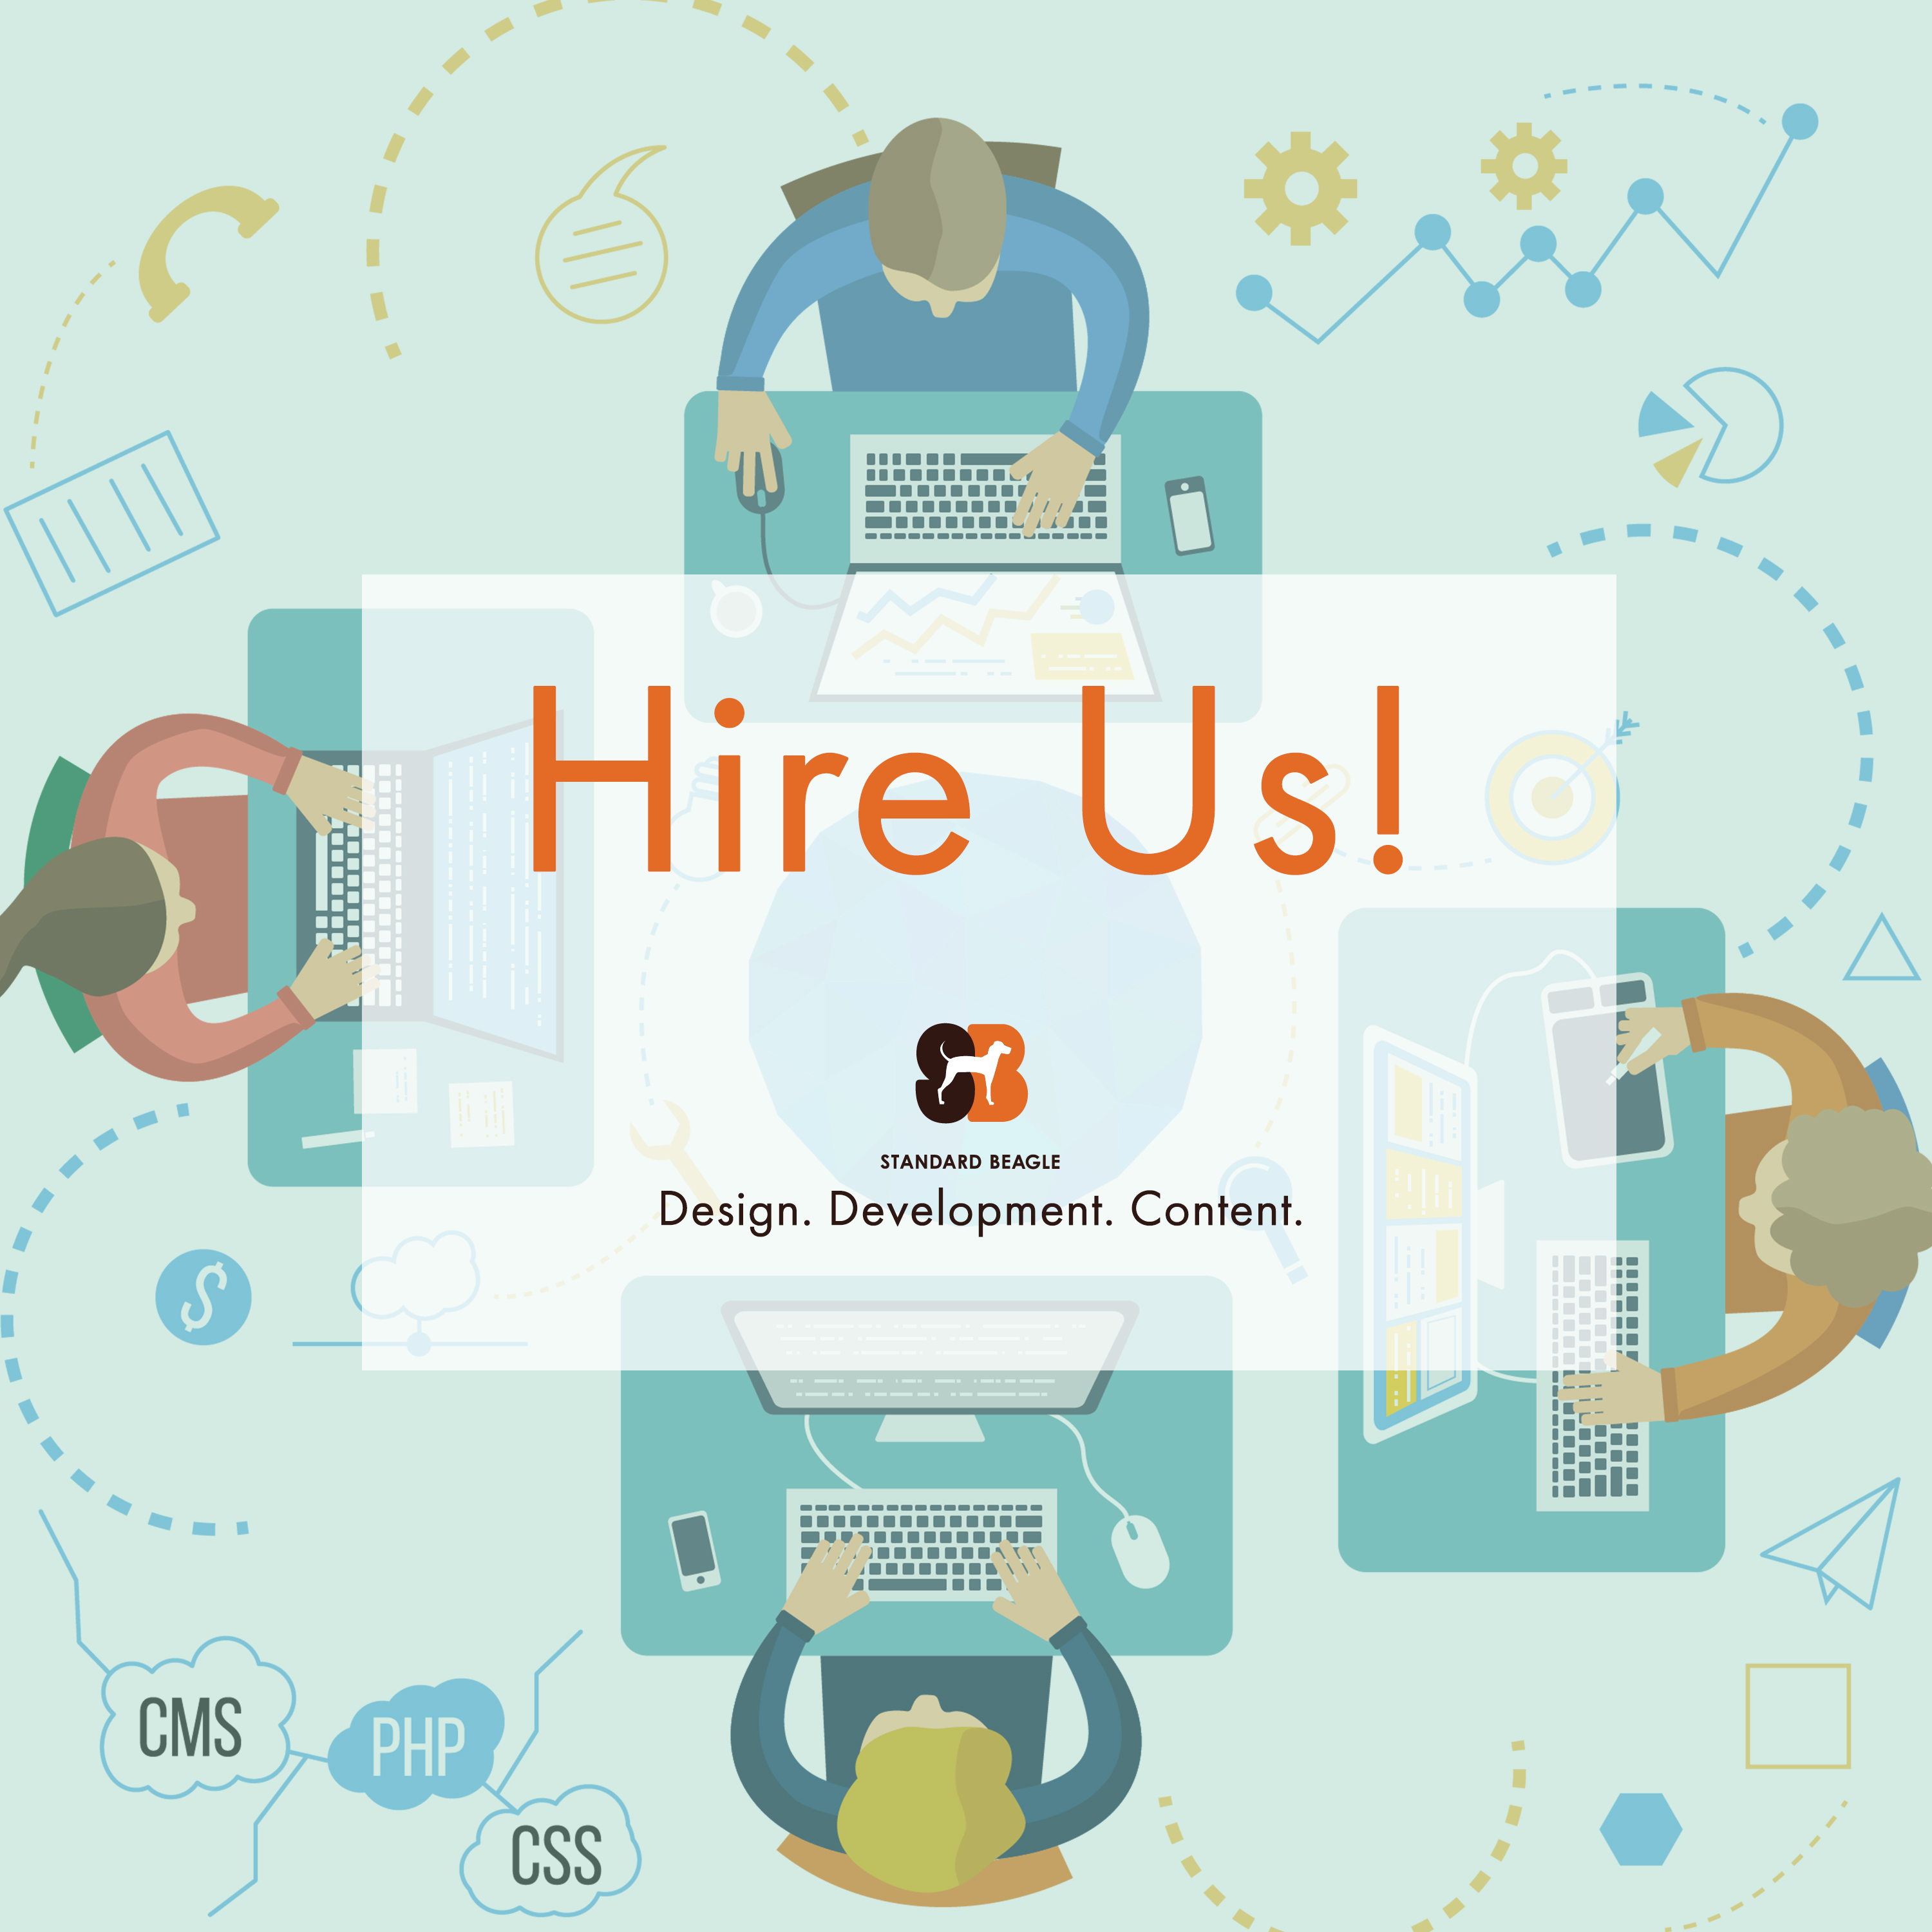 hire-us-graphic-without-text